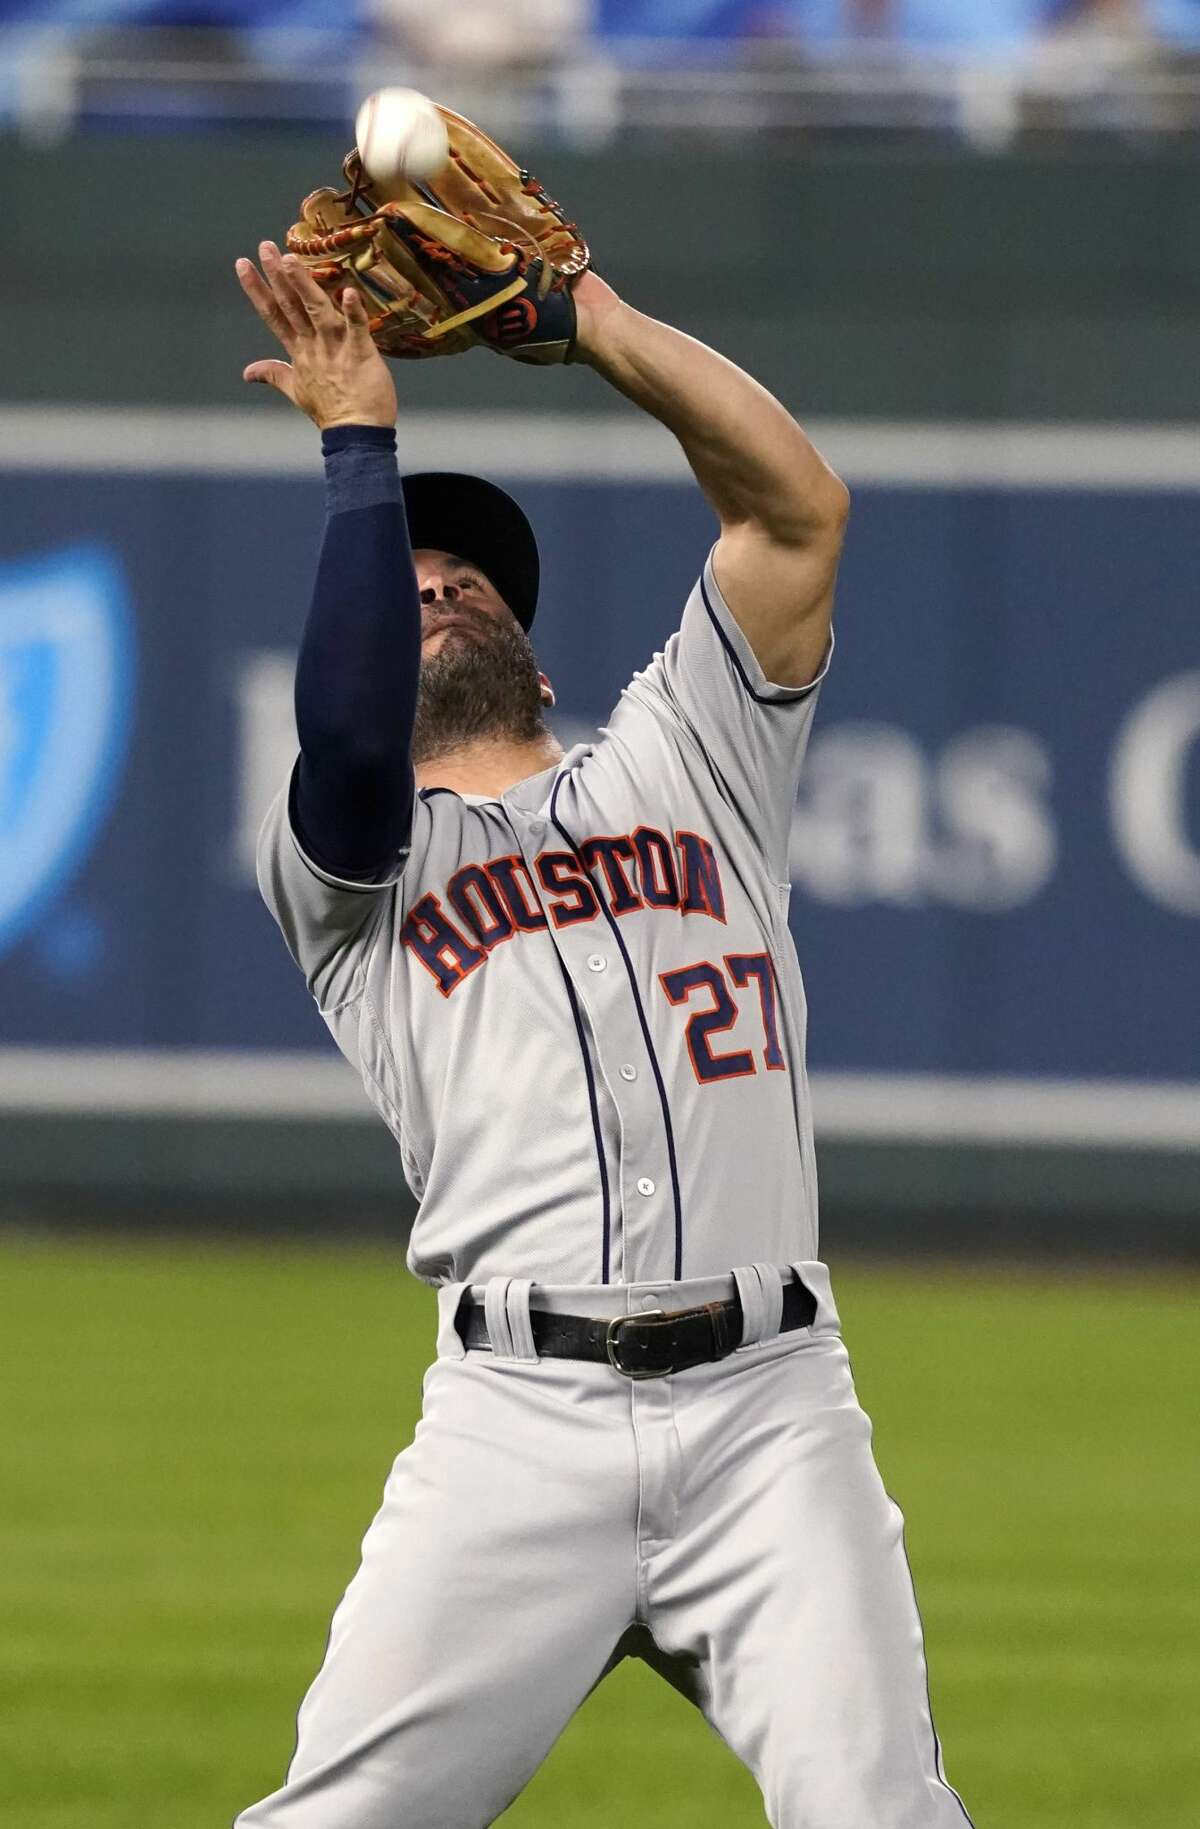 KANSAS CITY, MISSOURI - AUGUST 16: Jose Altuve #27 of the Houston Astros catches a ball hit by Whit Merrifield of the Kansas City Royals in the fourth inning at Kauffman Stadium on August 16, 2021 in Kansas City, Missouri. (Photo by Ed Zurga/Getty Images)